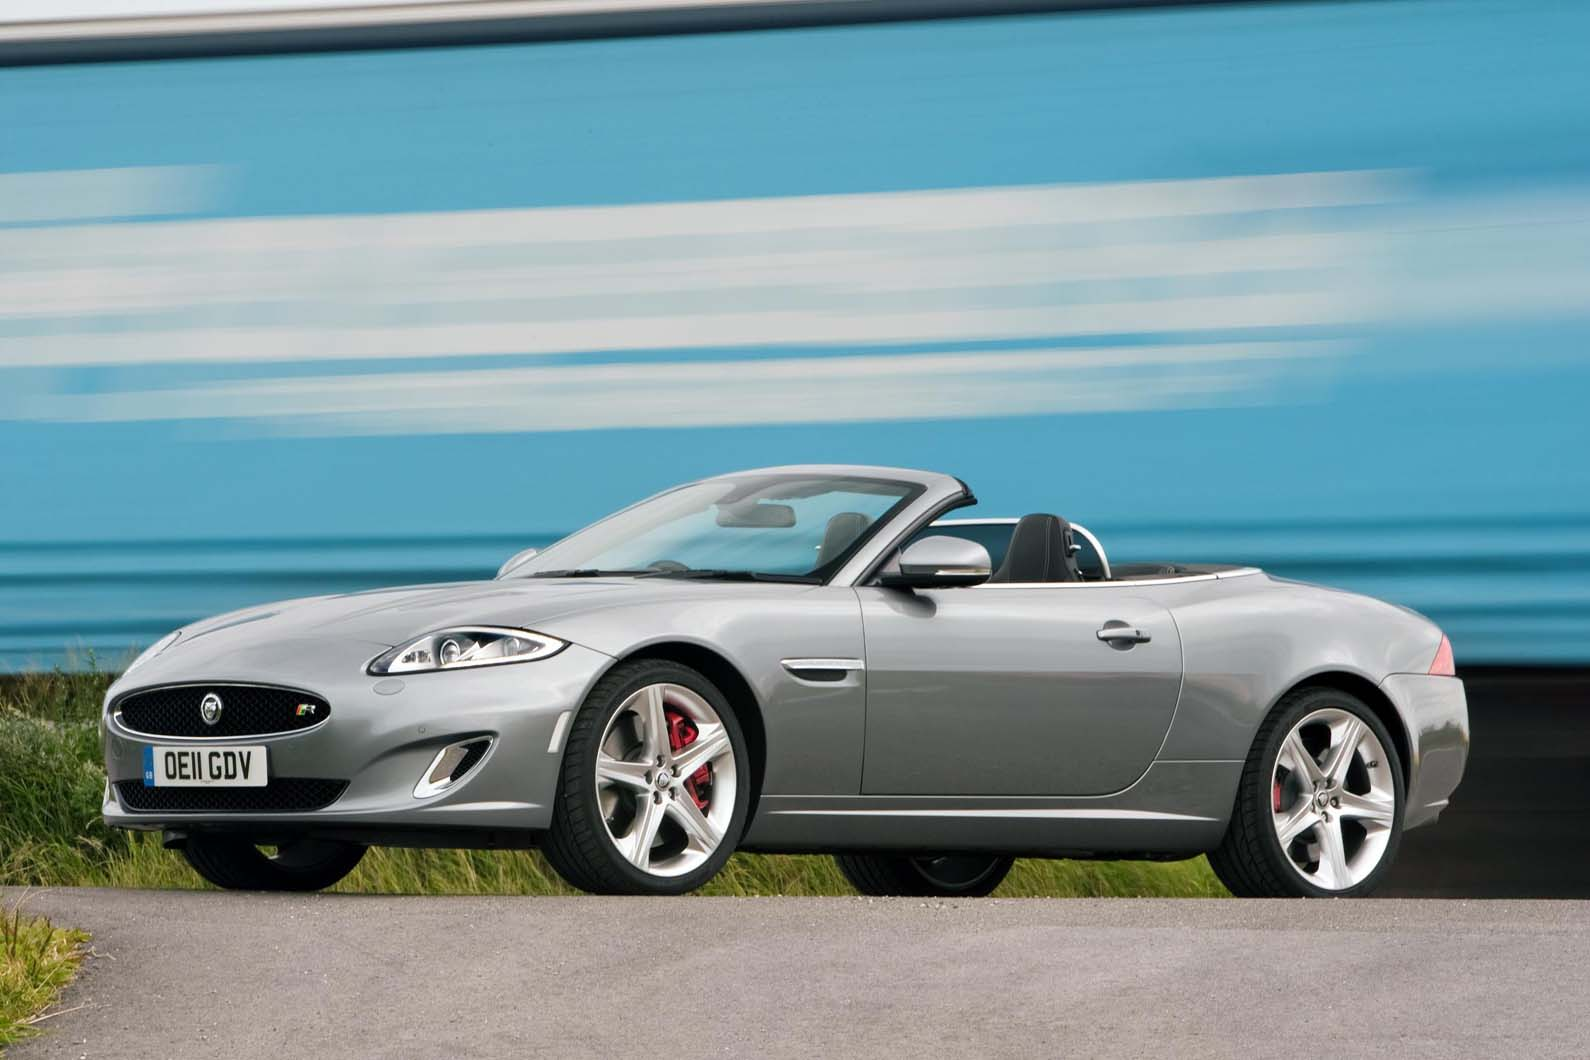 New Jaguar Xk Design Boss Wants 2 2 Gt To Return Autocar